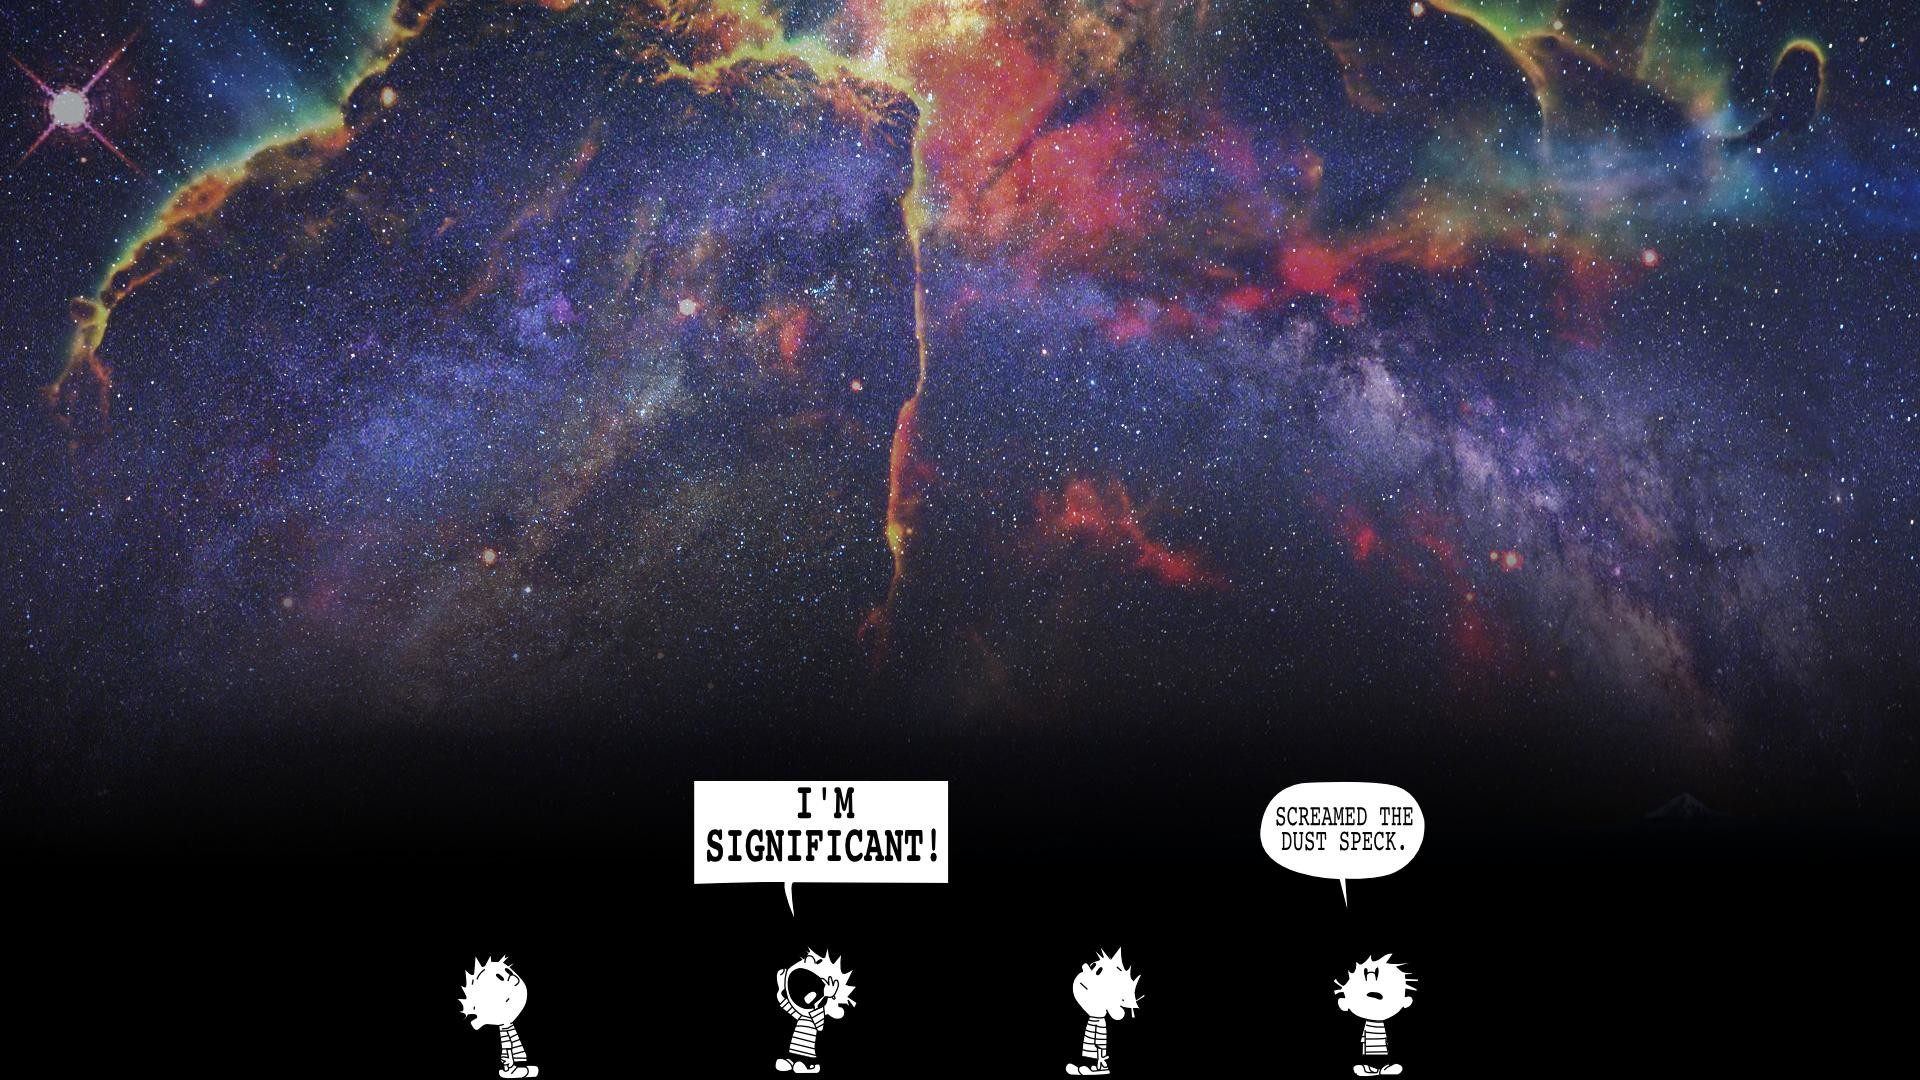 This is my favorite wallpaper. Calvin and Hobbes space theme.